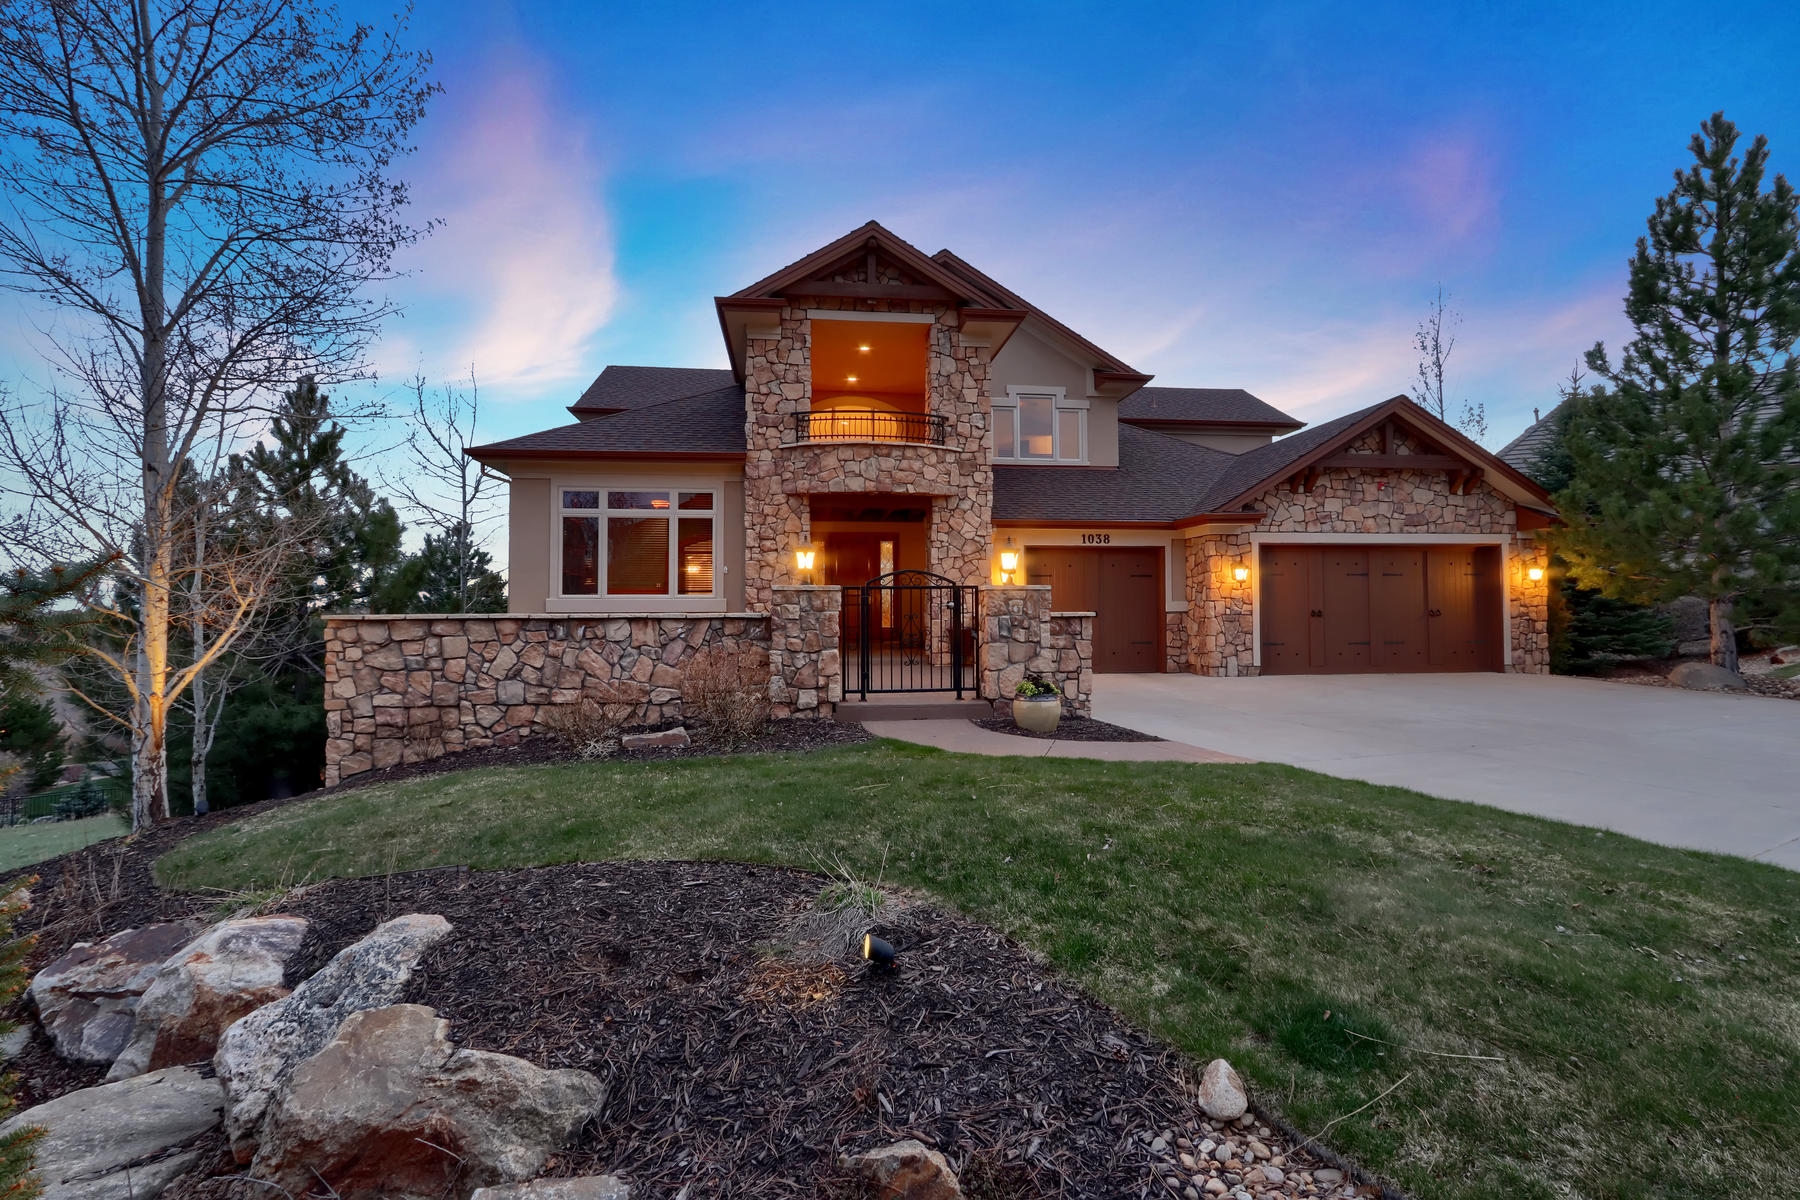 Single Family Homes for Sale at This spectacular custom home is located on a large cul-de-sac 1038 Buffalo Ridge Way, Castle Pines, Colorado 80108 United States